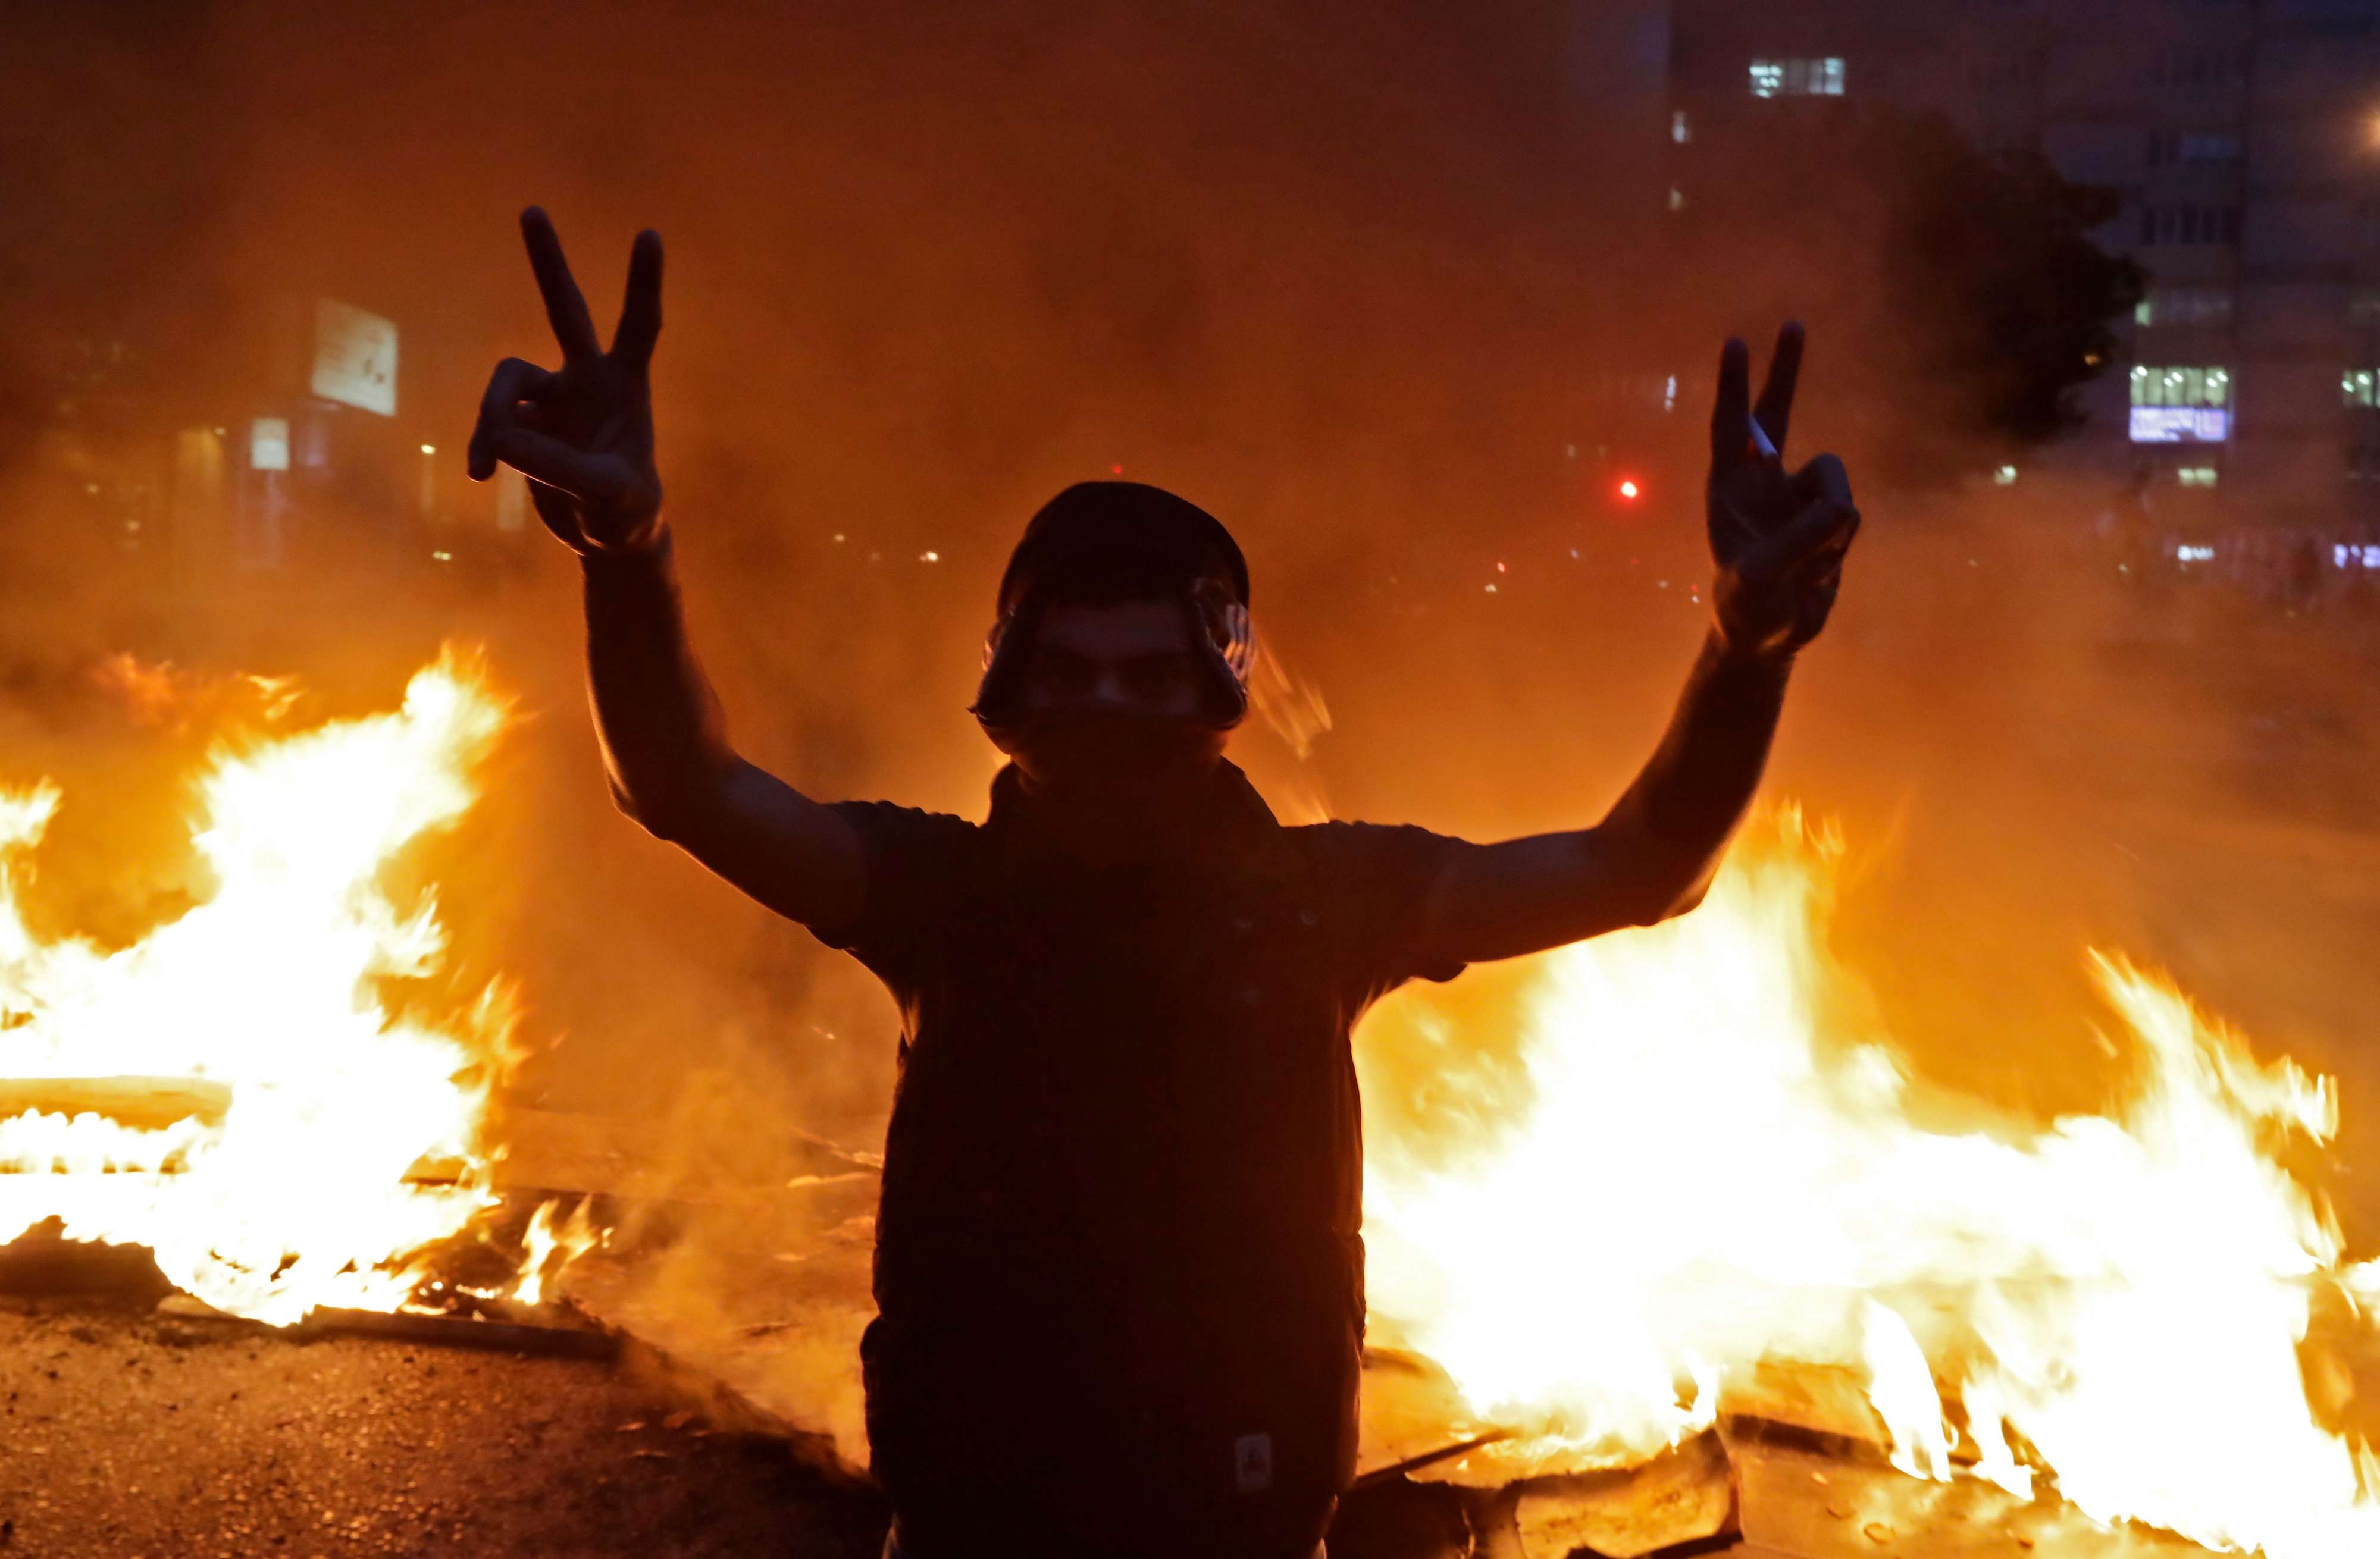 Violent drift. A Lebanese anti-government protester flashes the victory sign in front of a burning barricade in Beirut, January 15. (AFP)